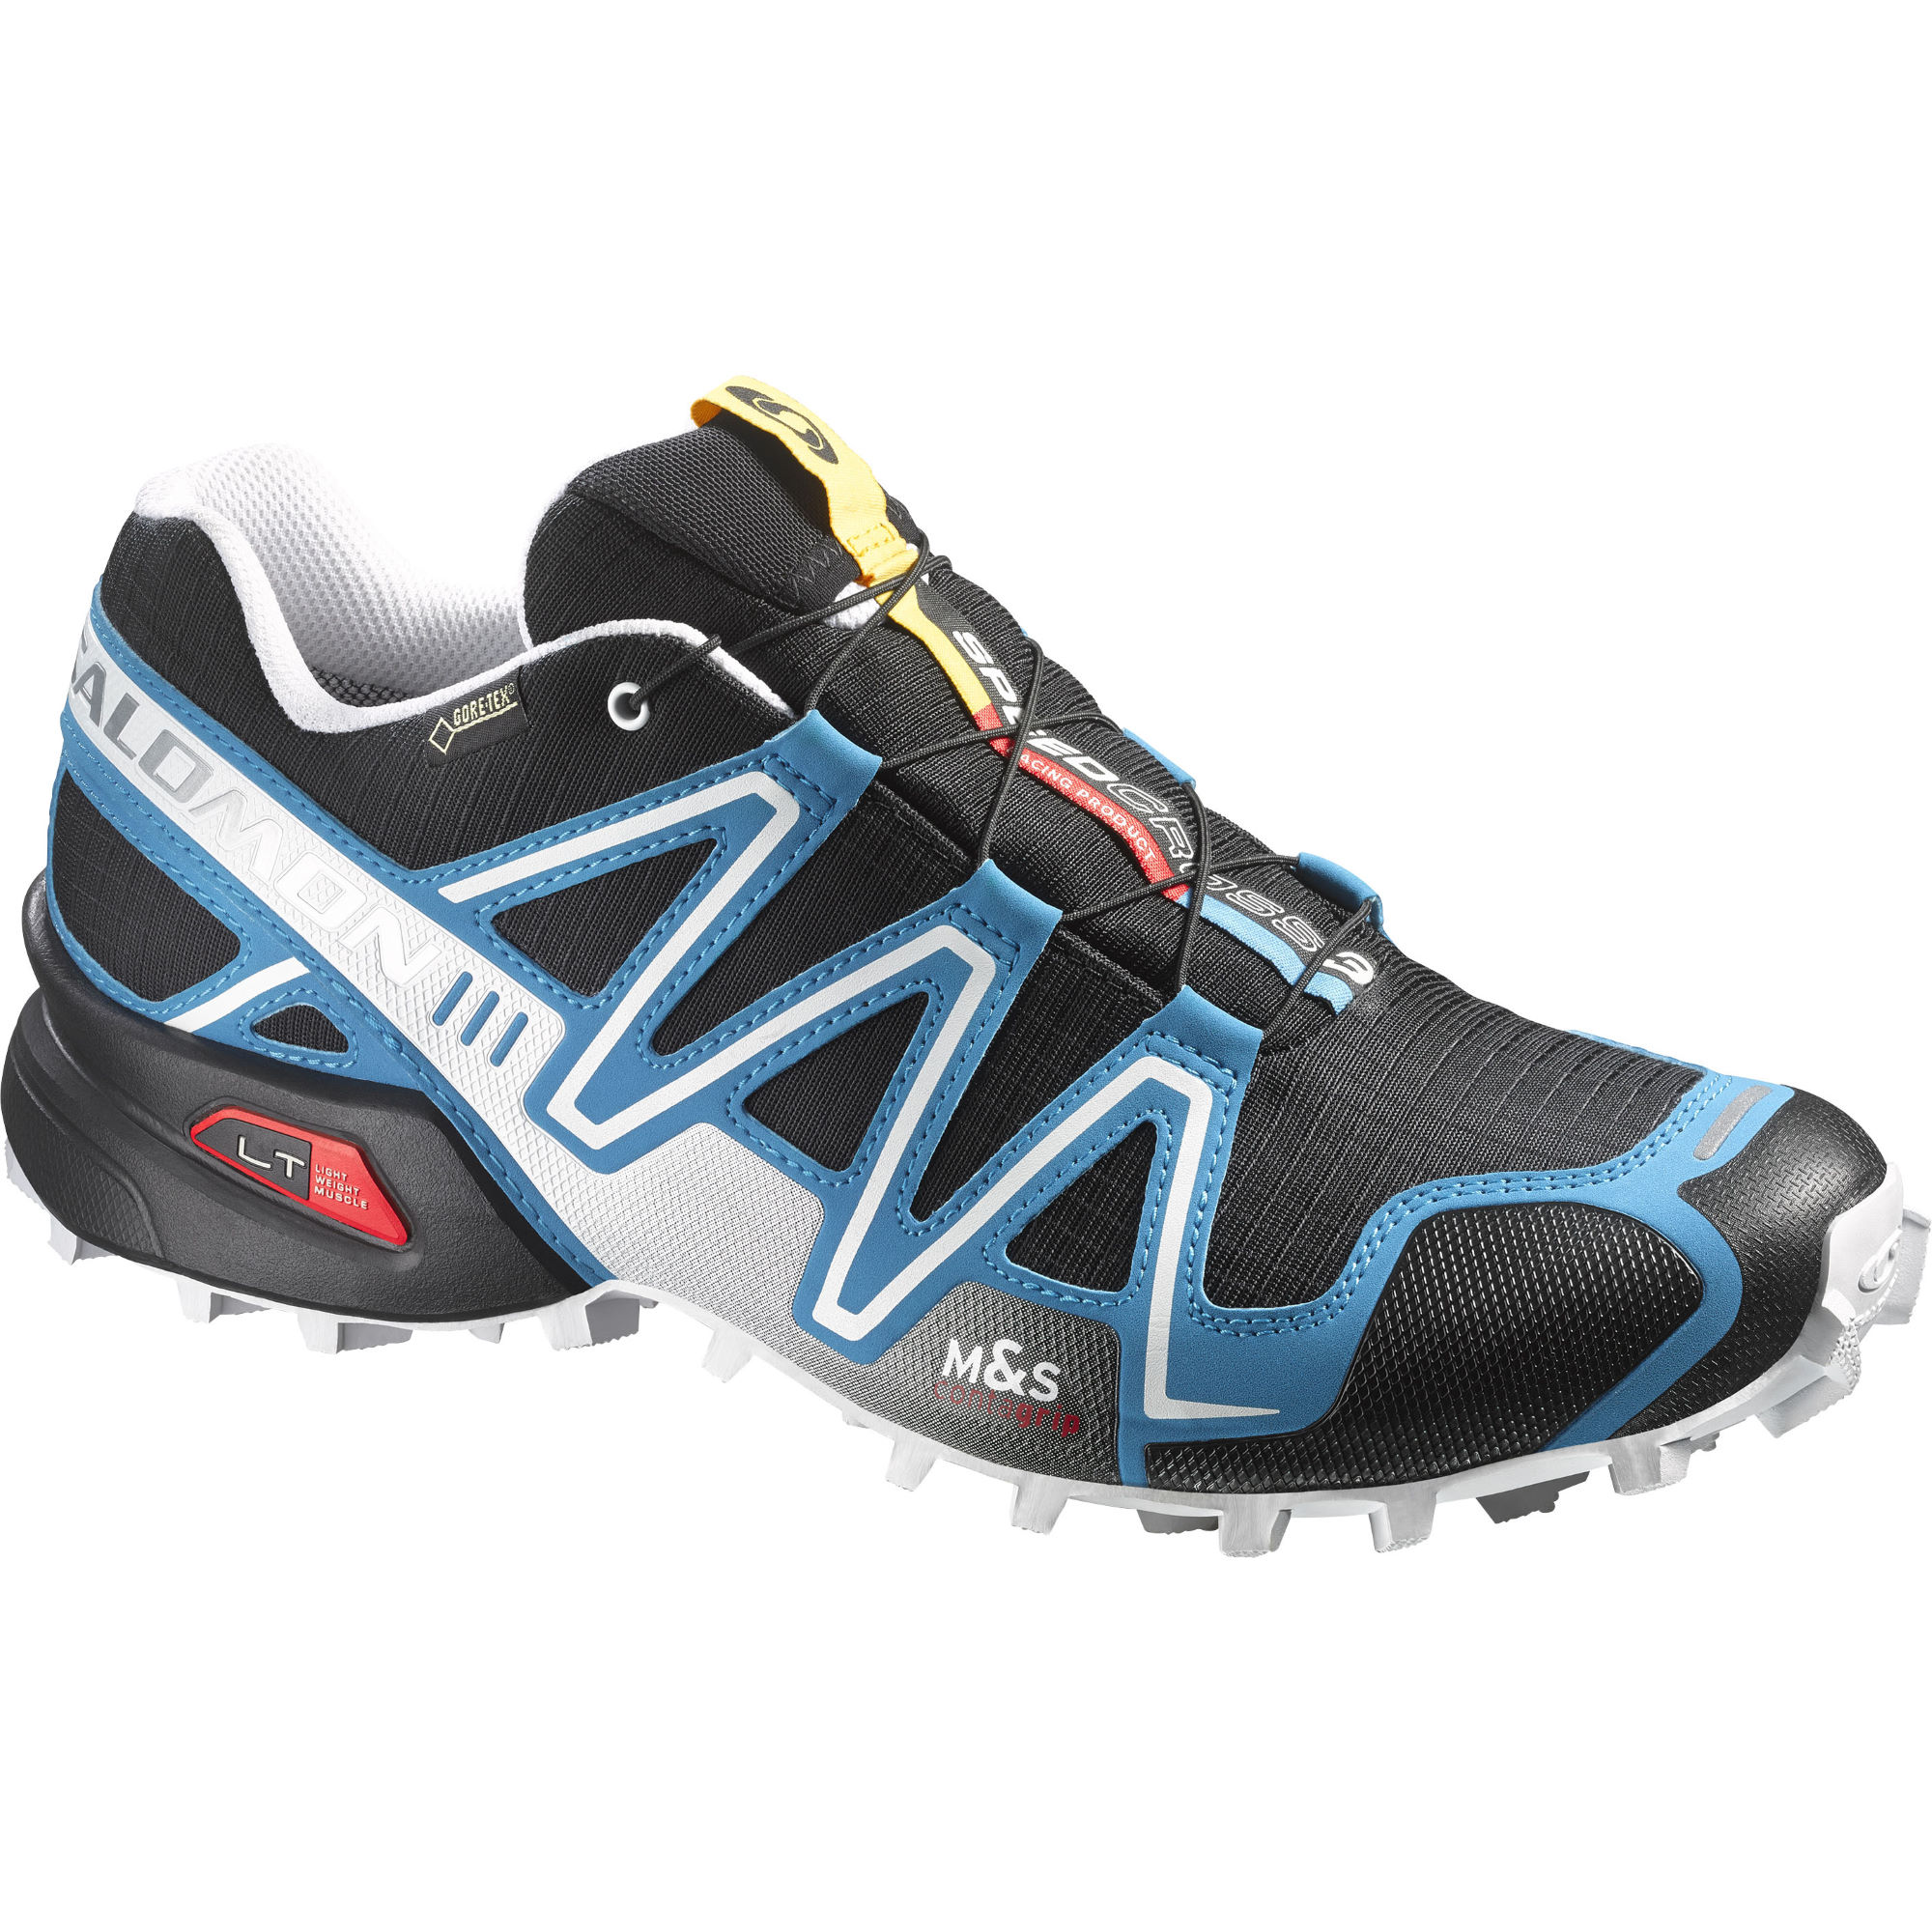 salomon xa pro 3d gtx, salomon chaussures, salomon x scream, salomon running, salomon ski, le jugement de salomon, hotel salomon de rothschild,